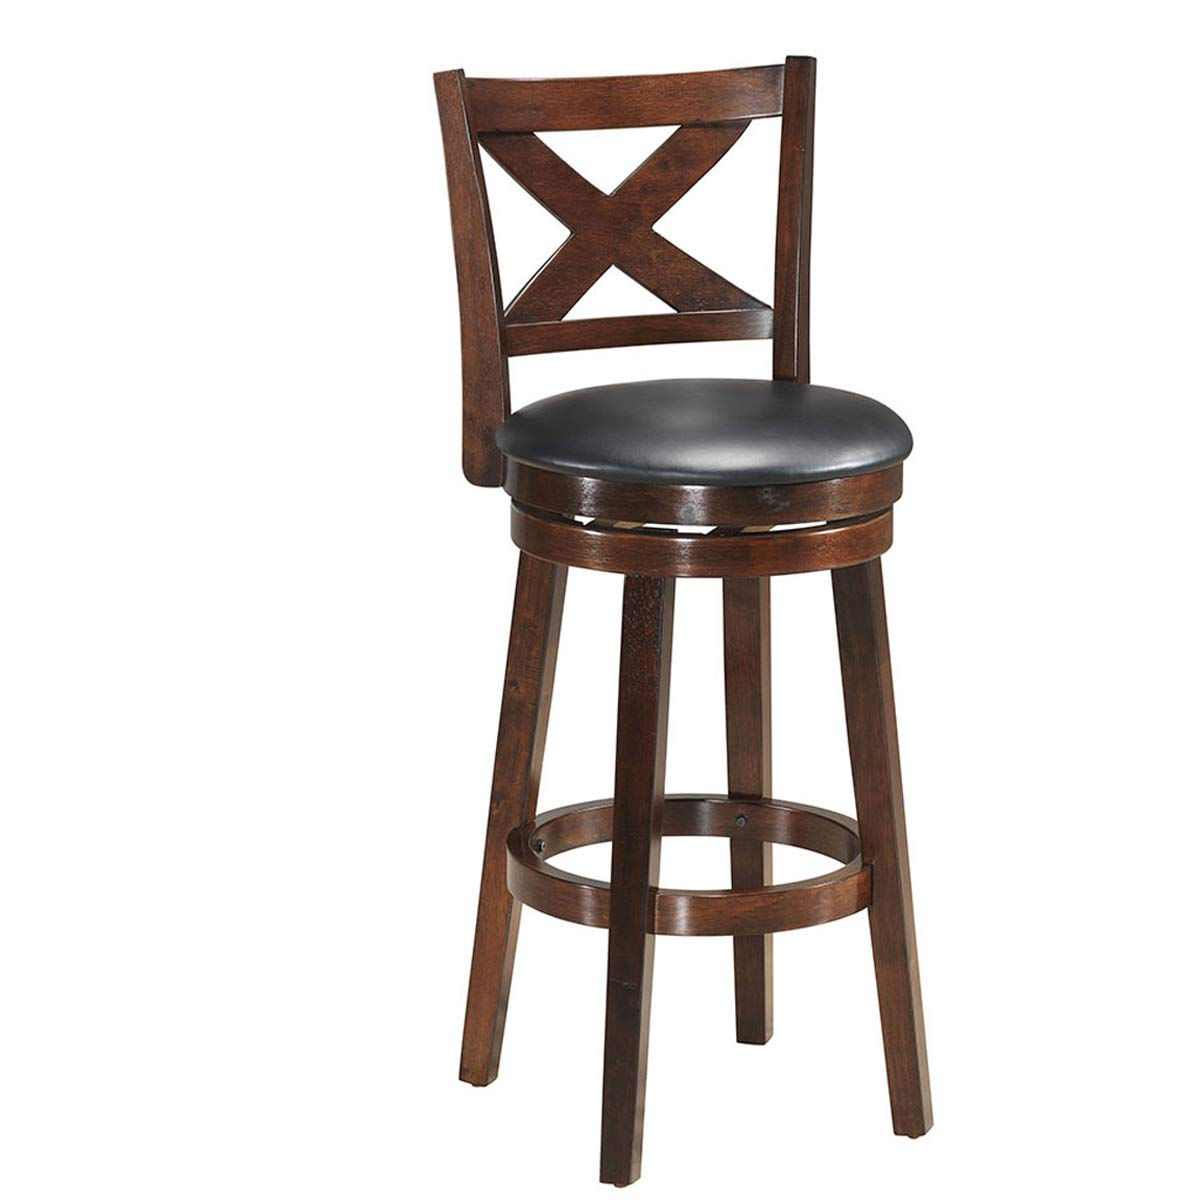 COSTWAY Bar Stools, Counter Height Dining Chair, Fabric Upholstered 360 Degree Swivel, PVC Cushioned Seat, Perfect for Dining and Living Room by COSTWAY